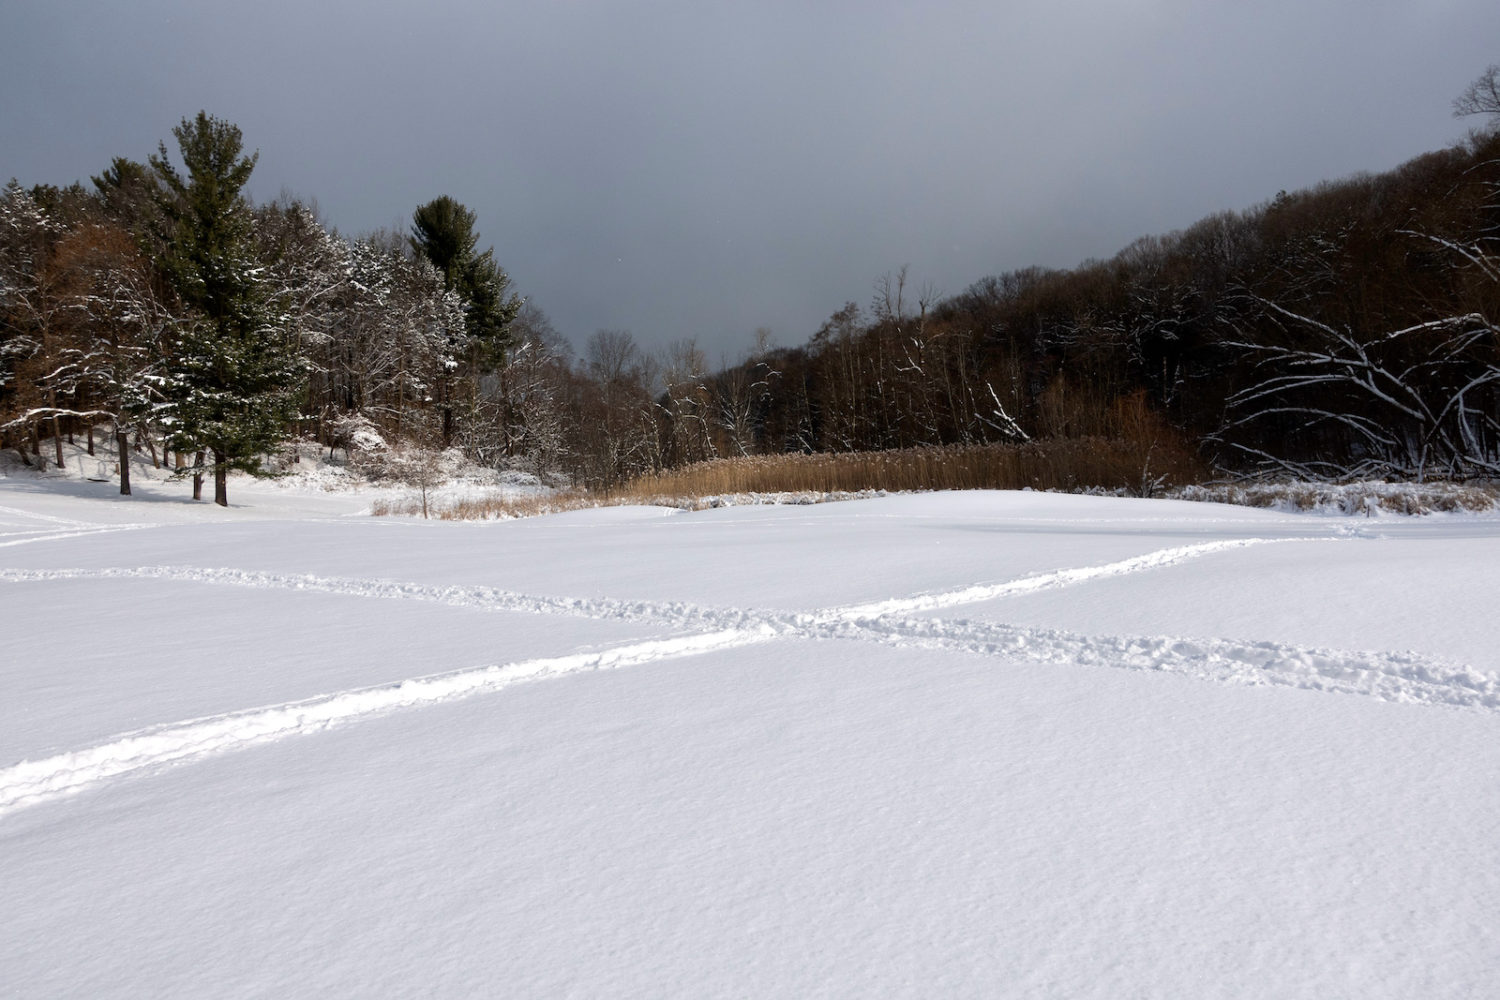 Cross country ski X-pattern in snow at Durand Eastman